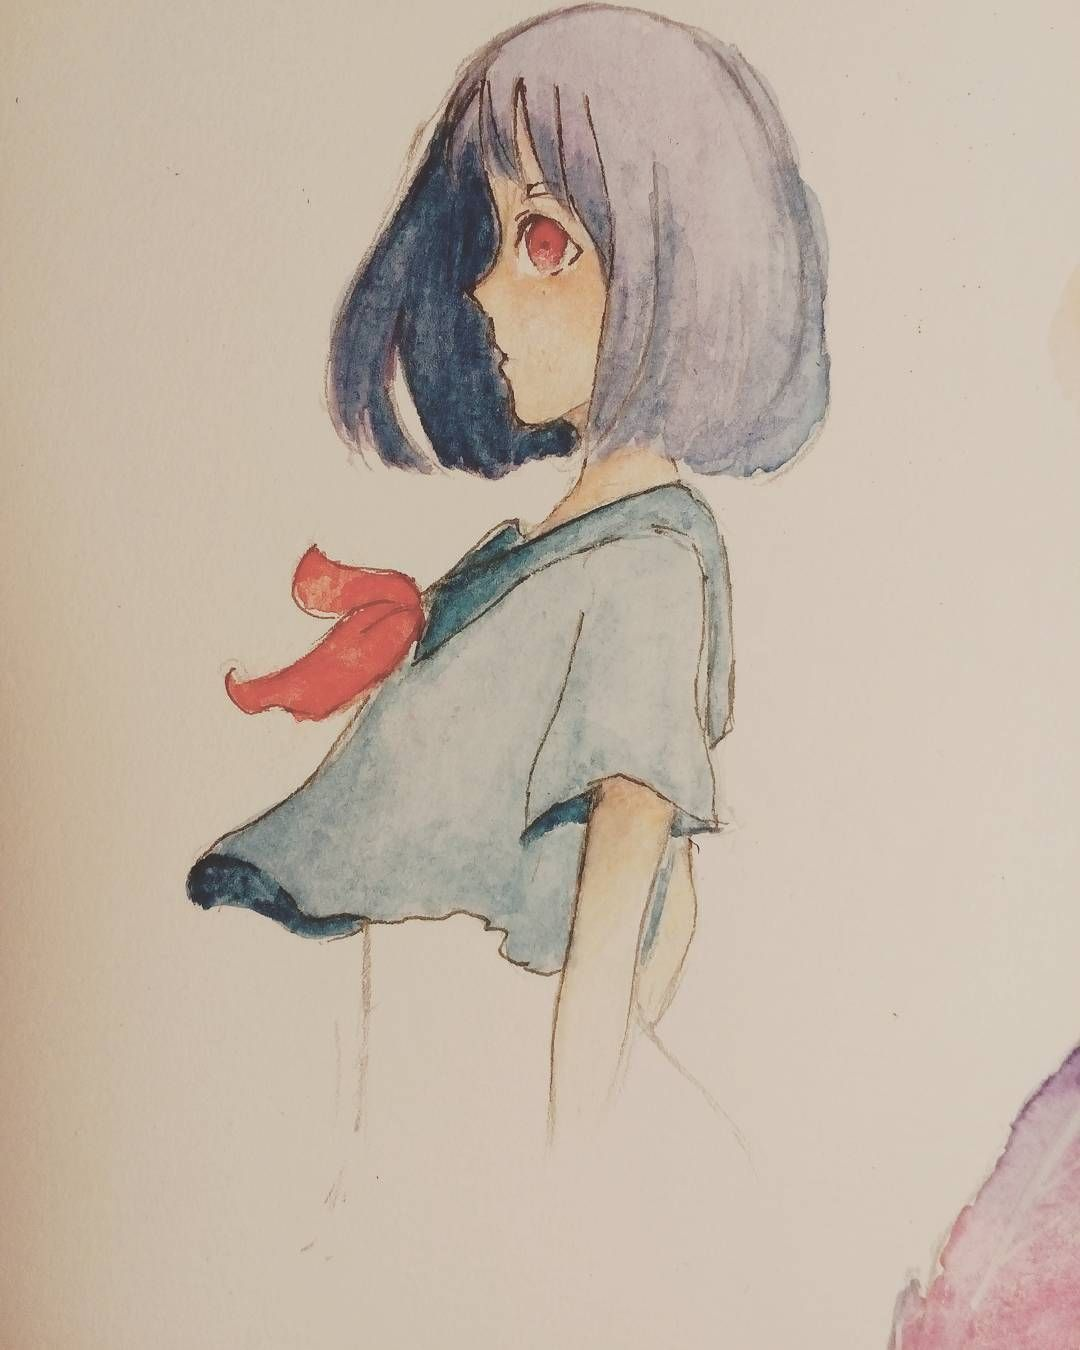 Will more perfect if there is no such face  #sketch #sketchbook # art #artist #animearttr #animedrawing #draw #art_color #watercolor #support_anime_artists #traditionalart #talentedpeopleinc #girl #shorthair #blue #purple #red #uniform #beautiful #fail #failface #instadraw #instaart #followme #angngyu by angngyu